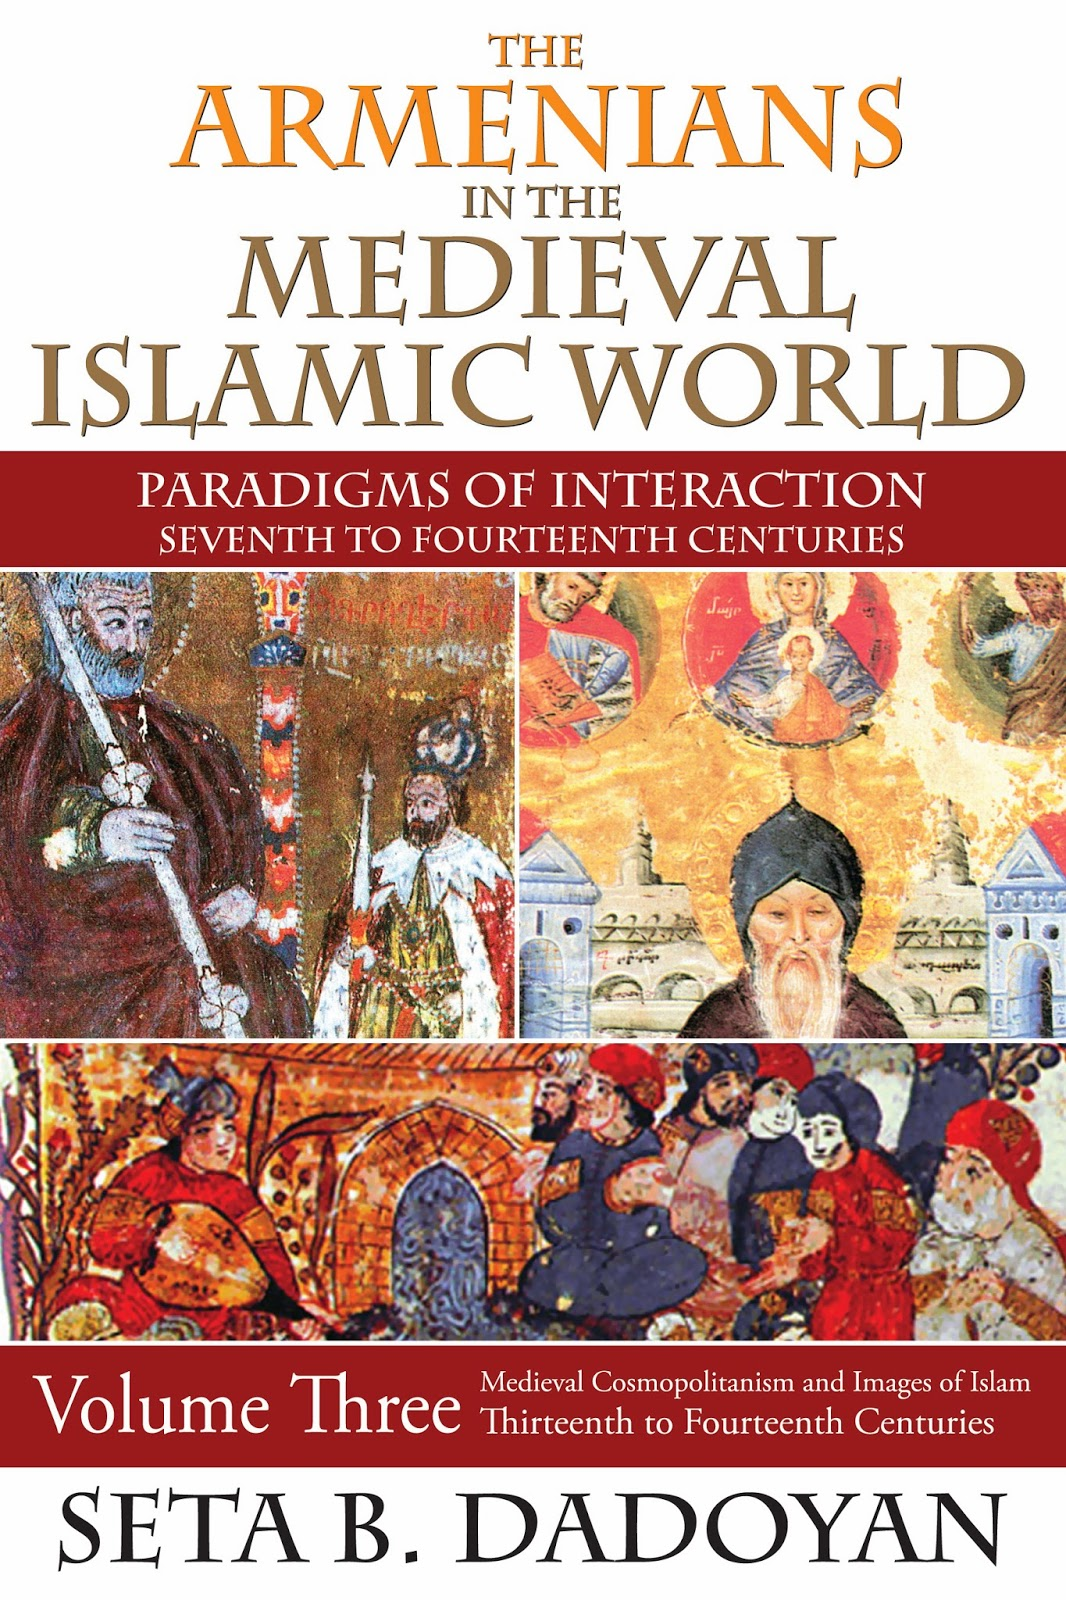 http://4.bp.blogspot.com/-C7JFfE9hthc/UksqQ890AeI/AAAAAAAADEQ/JR8A-iCkO8A/s1600/Armenians+in+the+Medieval+Islamic+World+vol+3.jpg